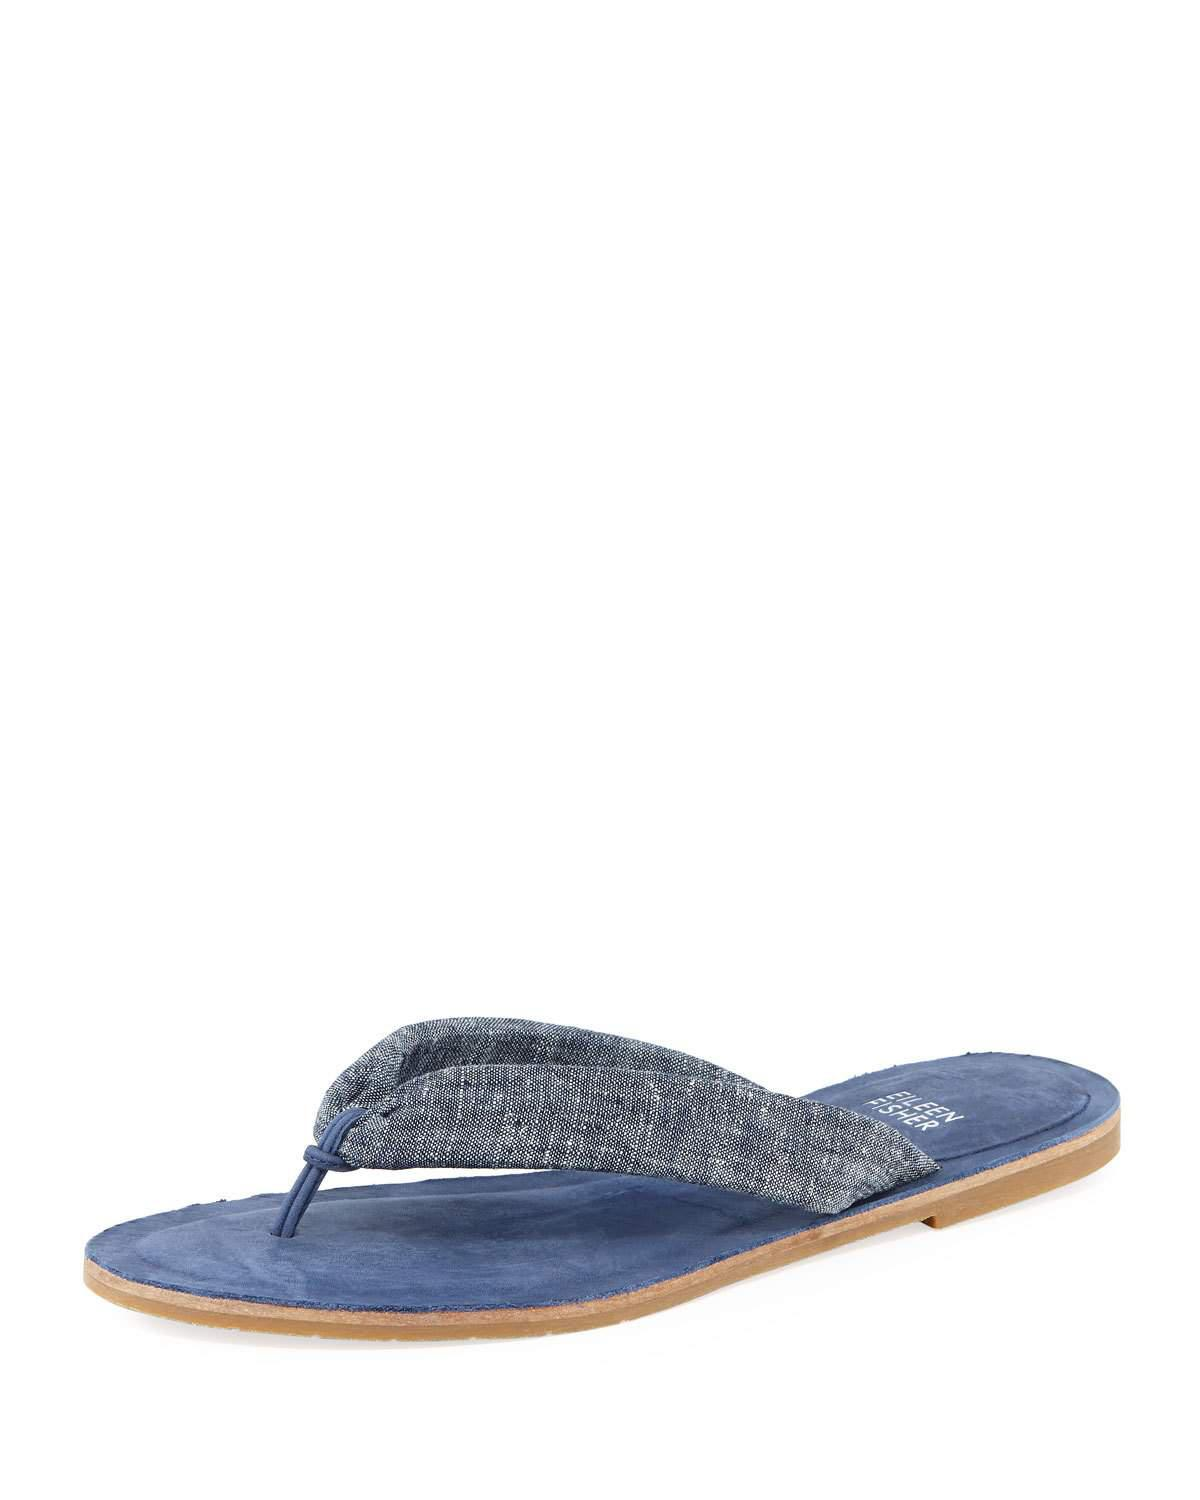 0a1c9ba8bf0 Lyst - Eileen Fisher Flue Flat Chambray Thong Sandal in Blue